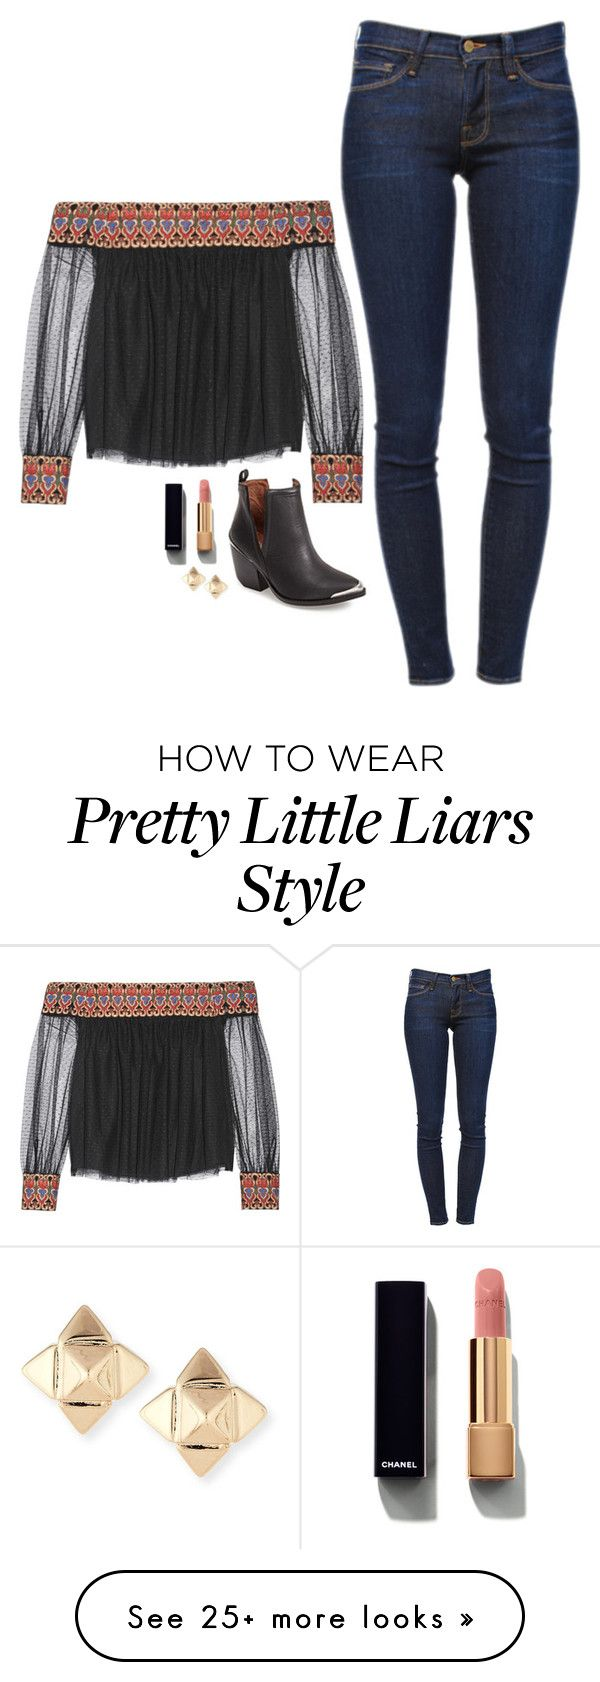 """Hanna Marin Inspired Outfit"" by daniellakresovic on Polyvore featuring Alice + Olivia, Chanel, Frame Denim and Valentino"